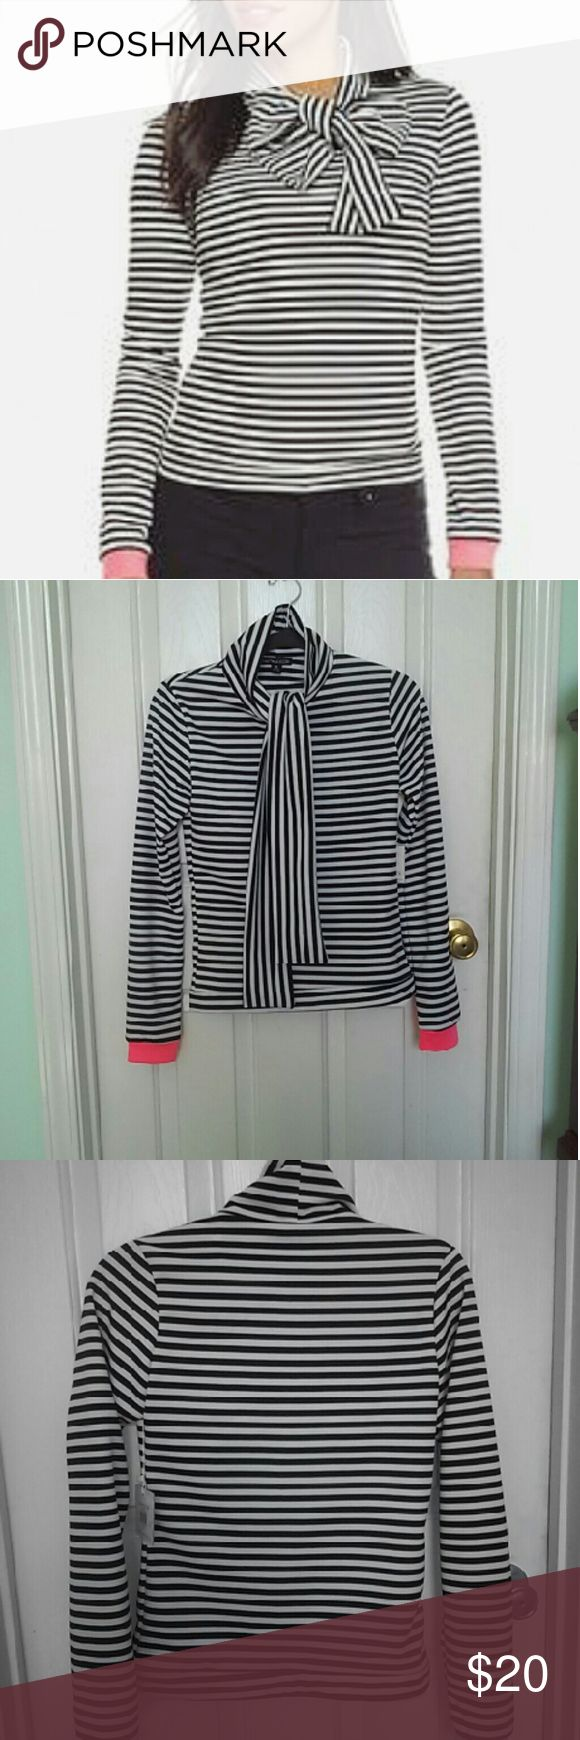 NWT | Natt Taylor | black and white shirt NWT Black and white striped shirt Tie-neck allows for many different ways to wear this! <3 From award-winning Atlanta-based designer Natt Taylor  Long sleeved with pink cuffs Size M Tops Blouses